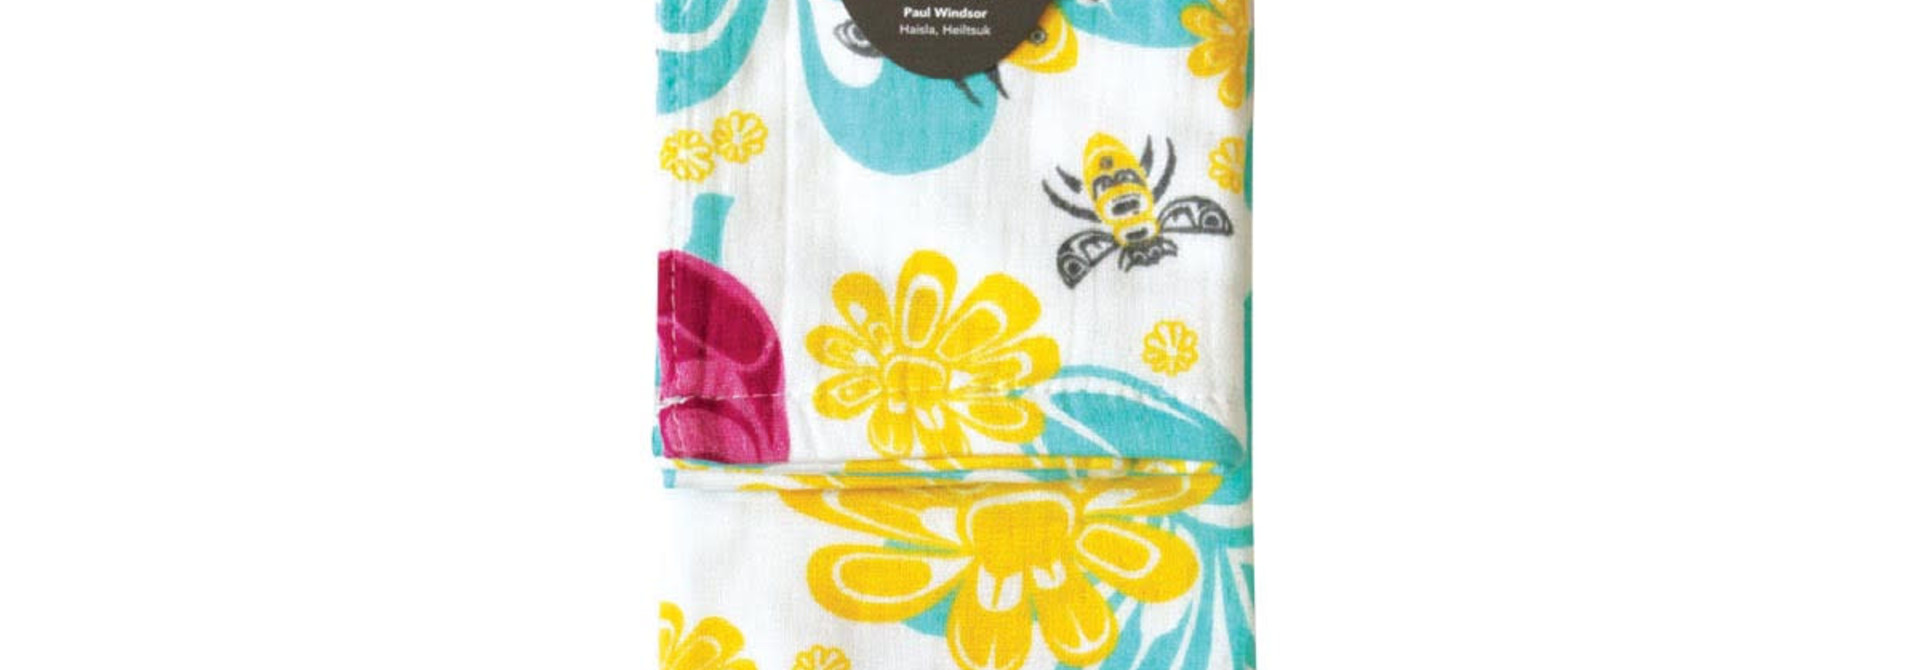 Bamboo Hand & Face Spa Towels